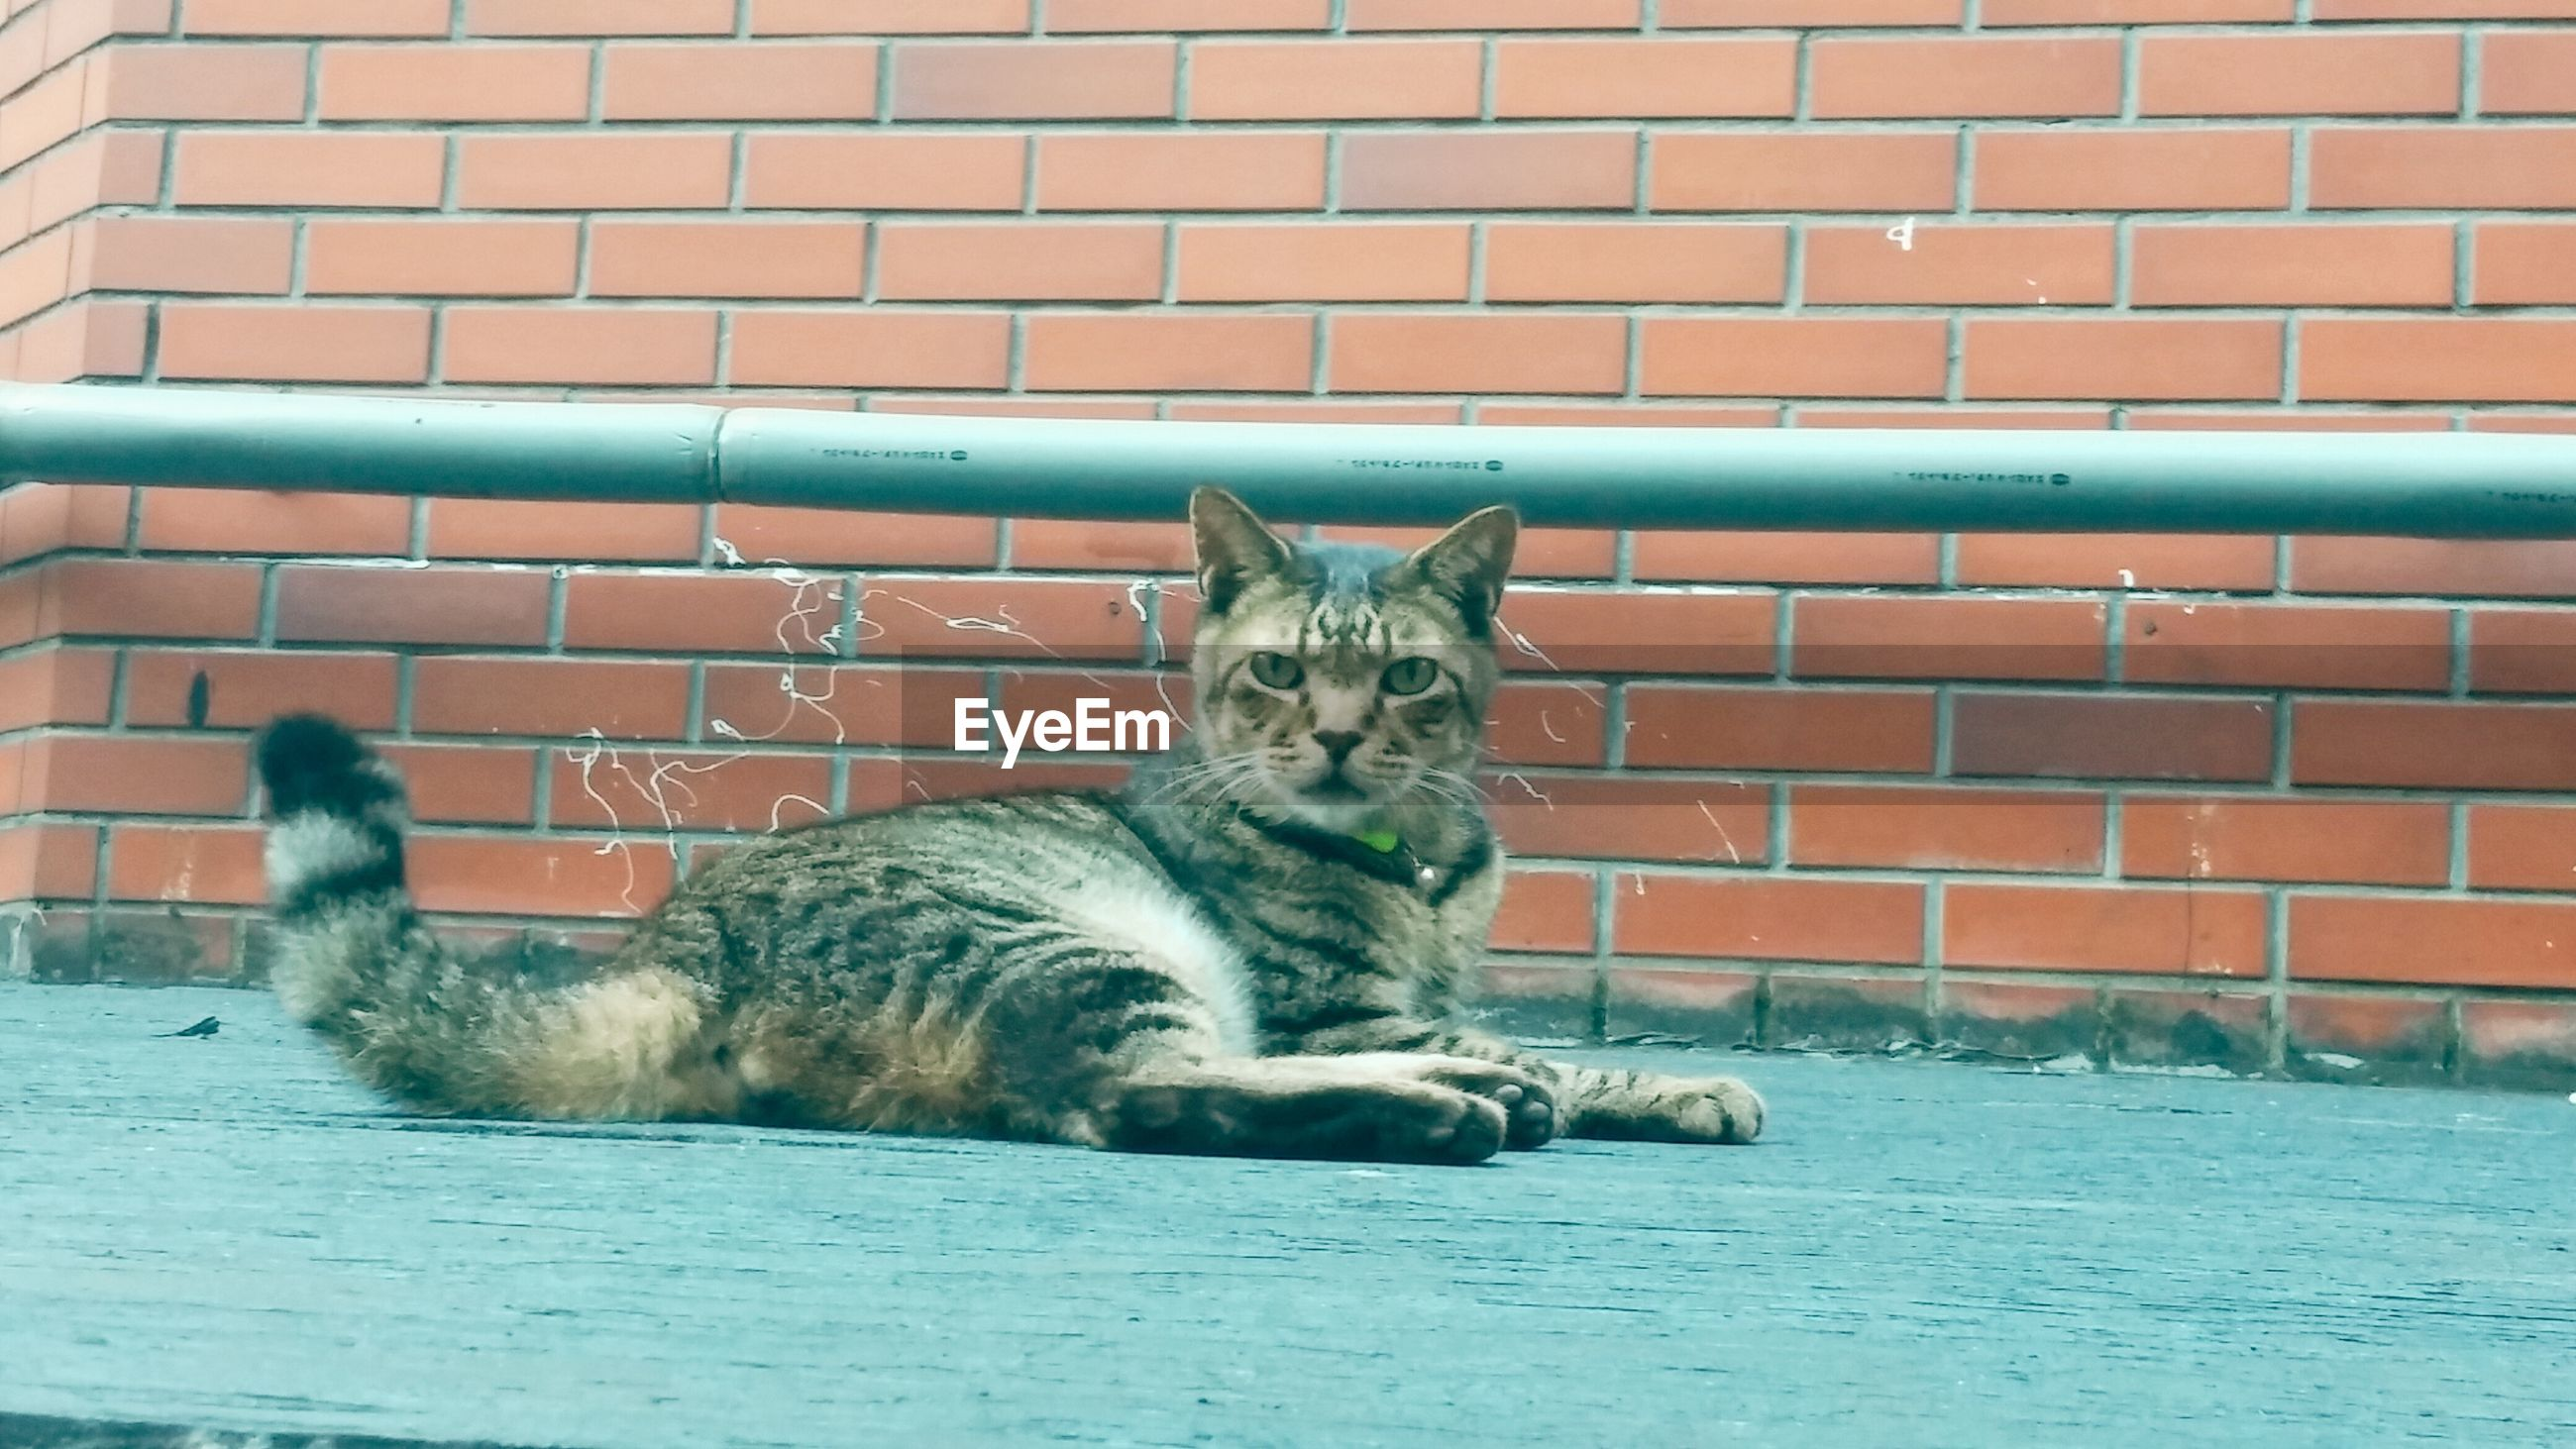 animal themes, mammal, one animal, domestic animals, pets, domestic cat, cat, feline, wall - building feature, built structure, building exterior, architecture, relaxation, portrait, sitting, lying down, looking at camera, whisker, brick wall